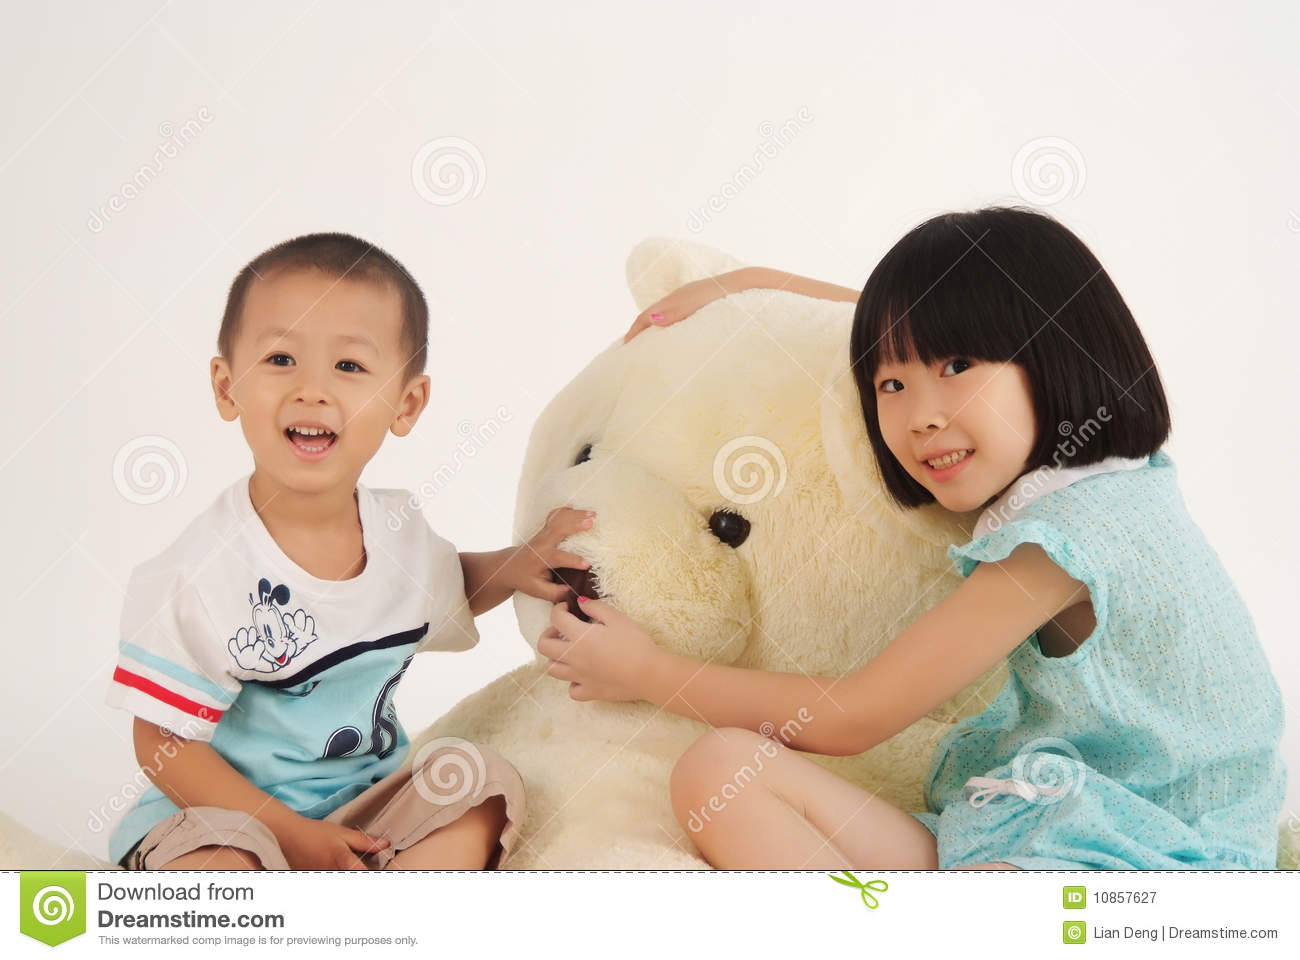 Girl and boy with bear toy